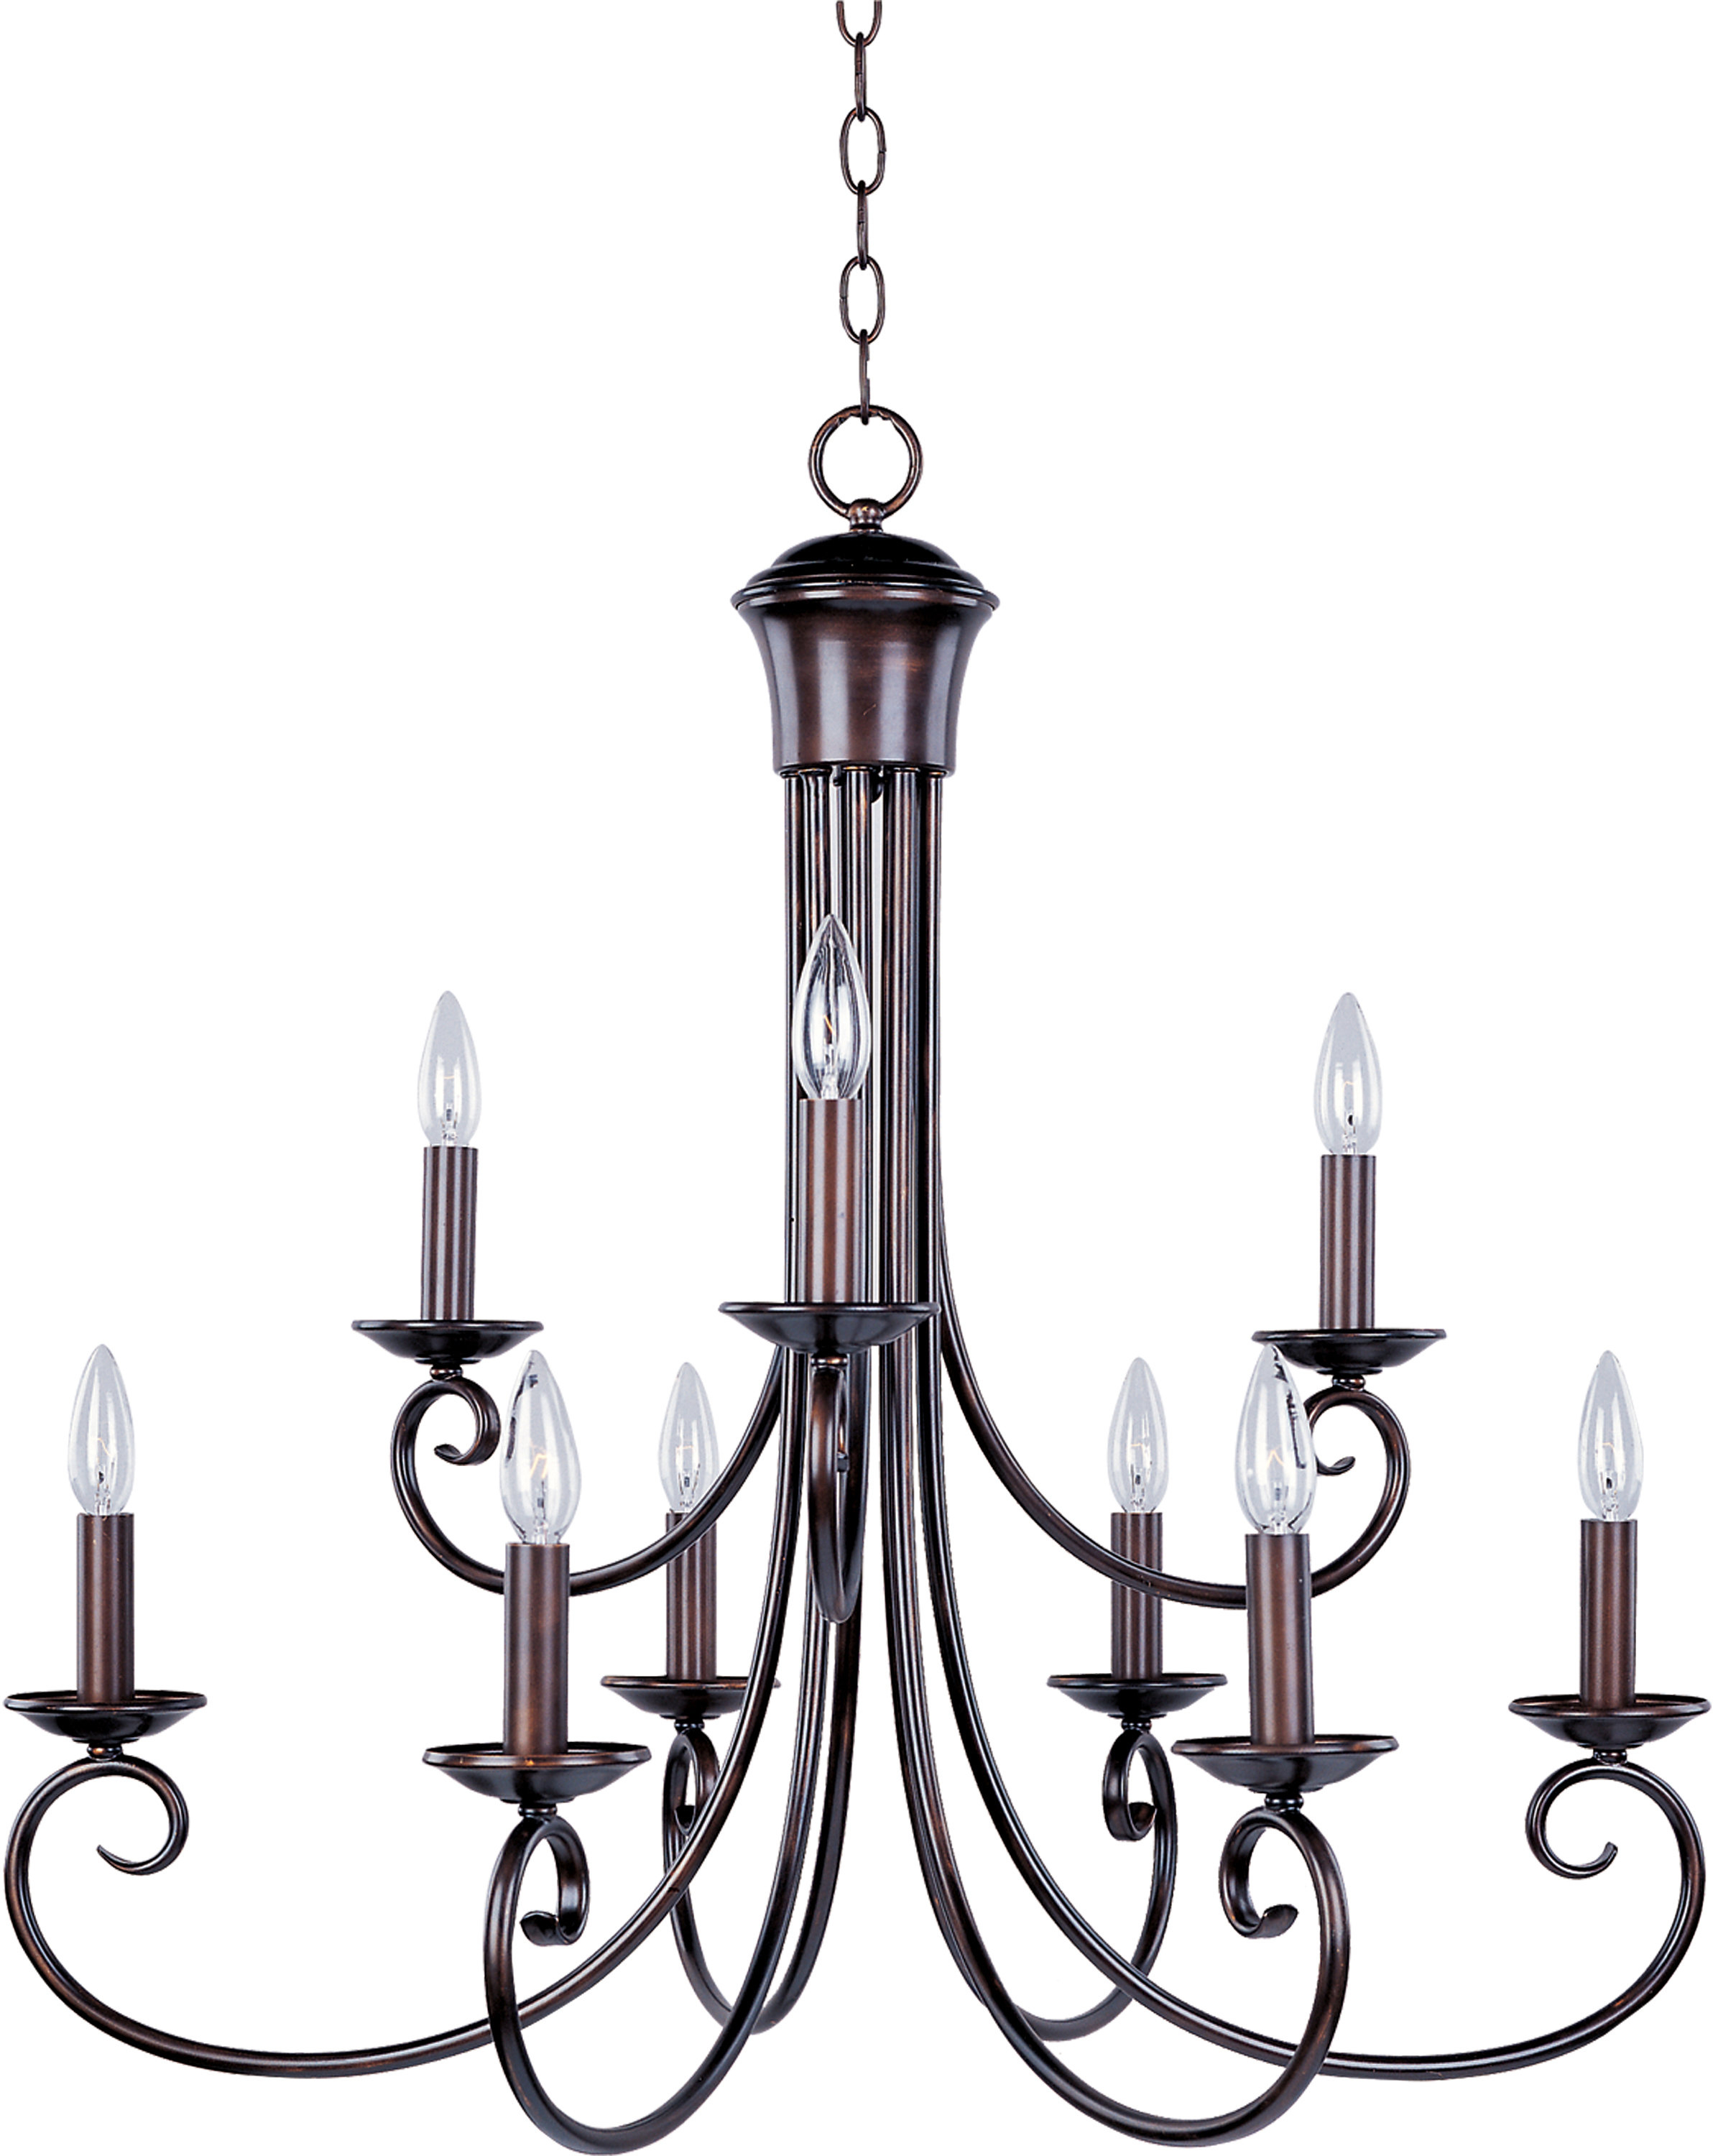 Recent Kenedy 9 Light Candle Style Chandelier Regarding Giverny 9 Light Candle Style Chandeliers (Gallery 3 of 20)